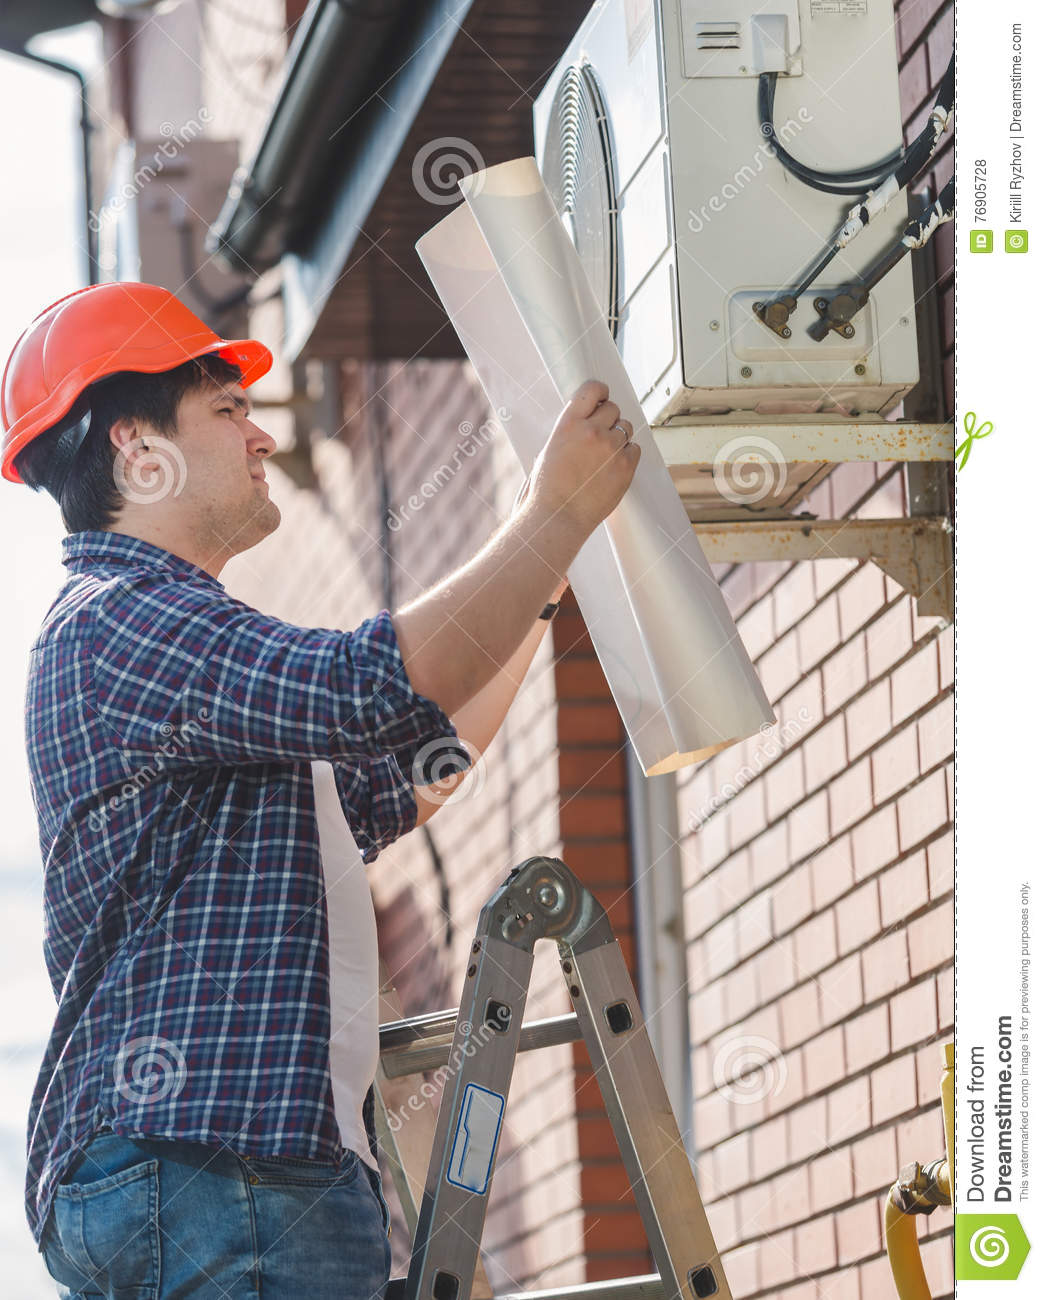 Engineer in hardhat looking in plan of air conditioning system